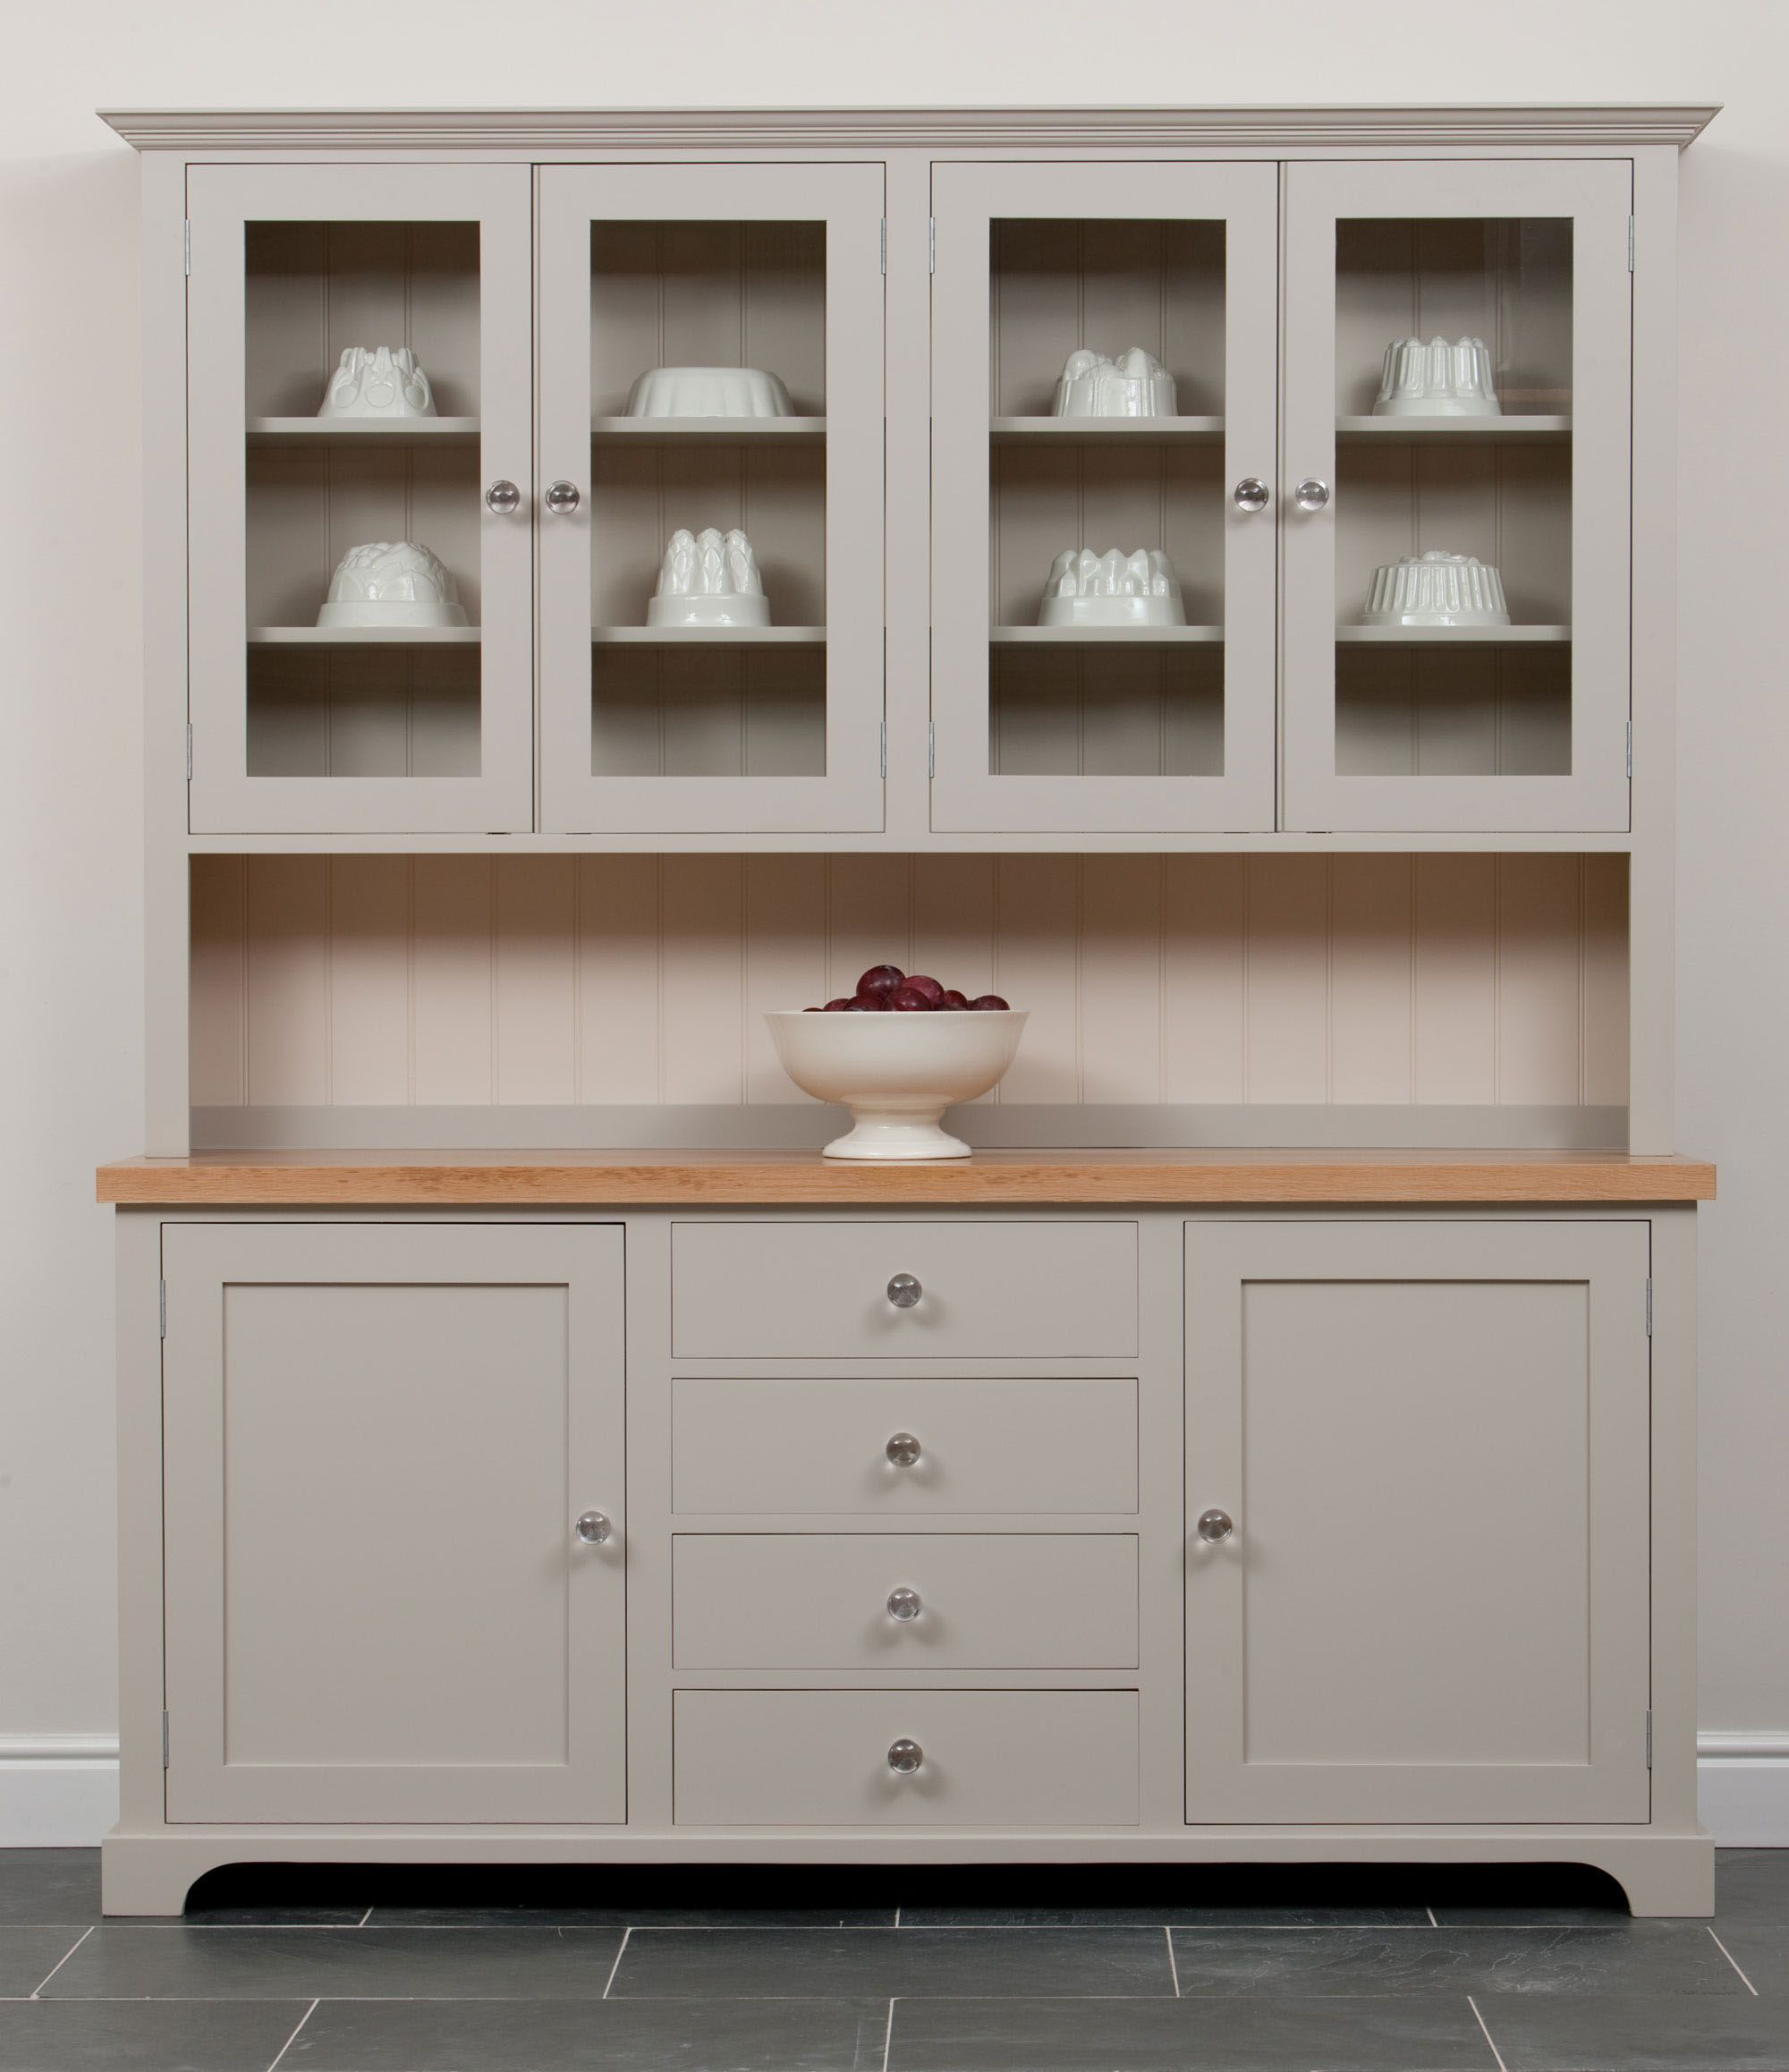 The Parsonage Dresser From Kitchen Is Shown Painted In Plover Gray Prices Start At LIKE THIS COLOR